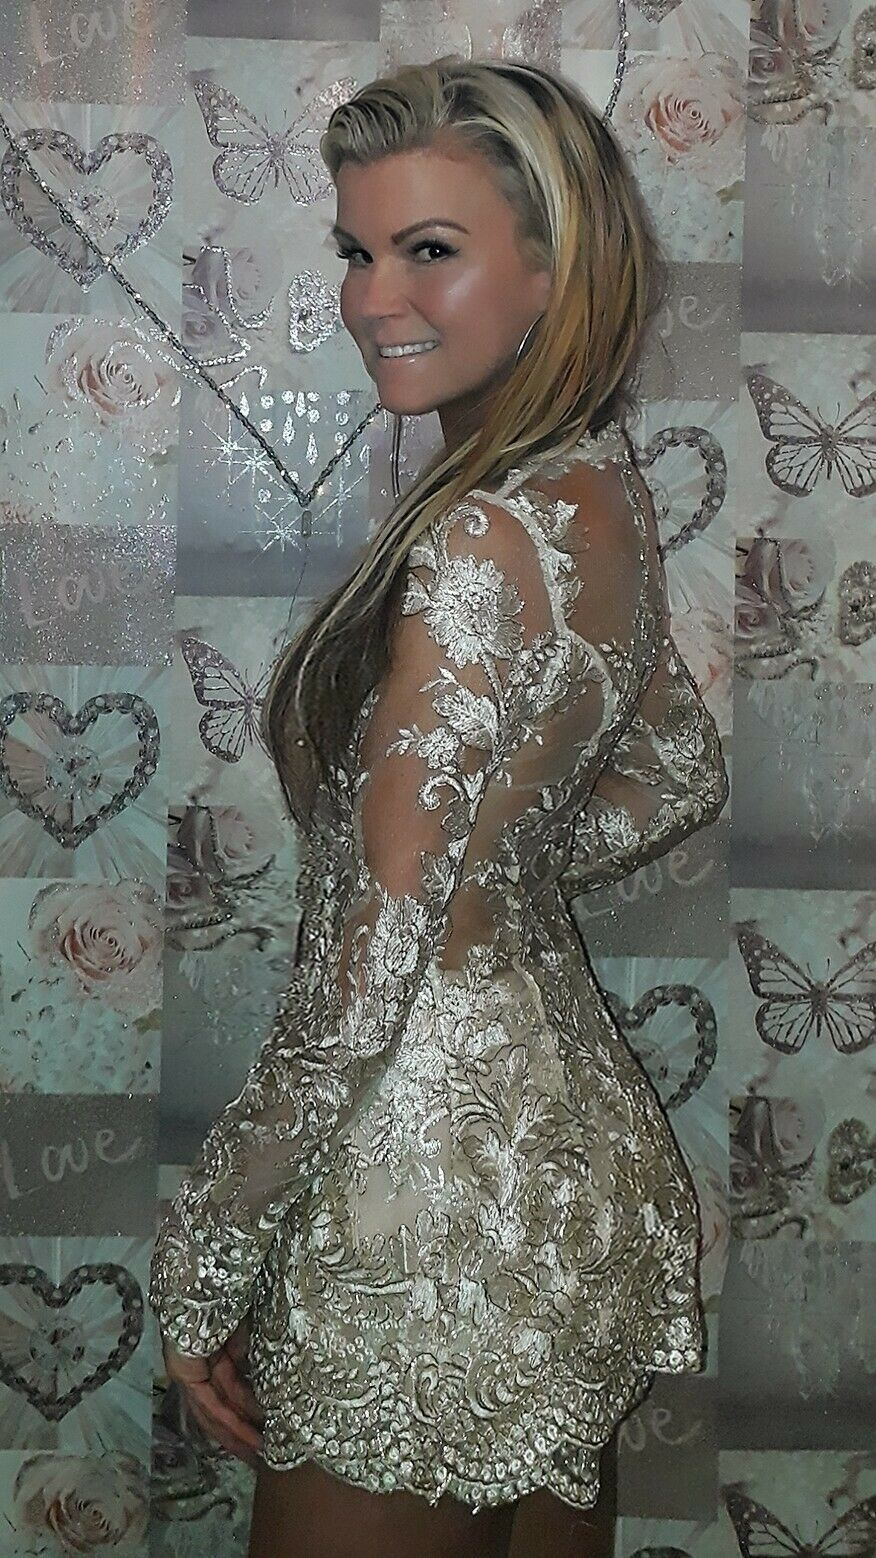 Lace sexy playsuit mini dress 10 nude gold shorts set BNWT sheer The Dolls House